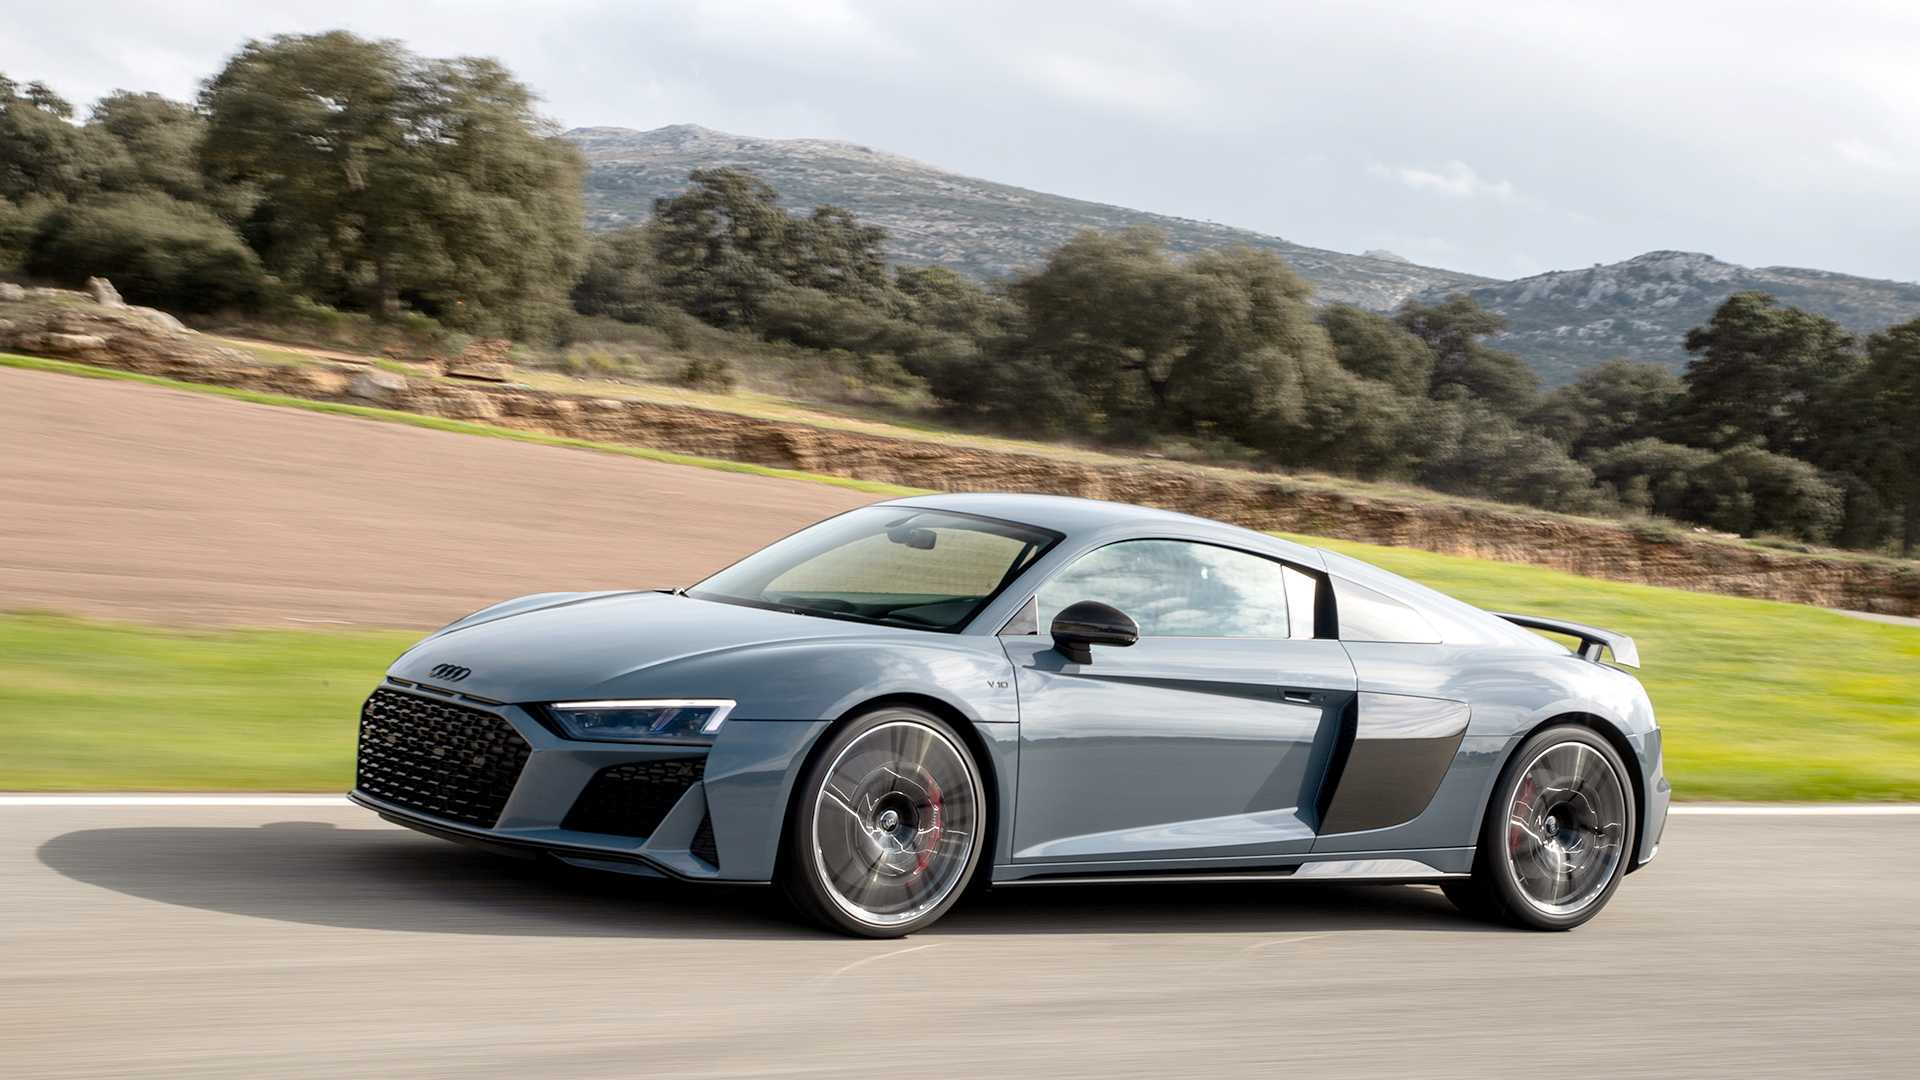 37 Concept of 2019 Audi R8 Prices with 2019 Audi R8